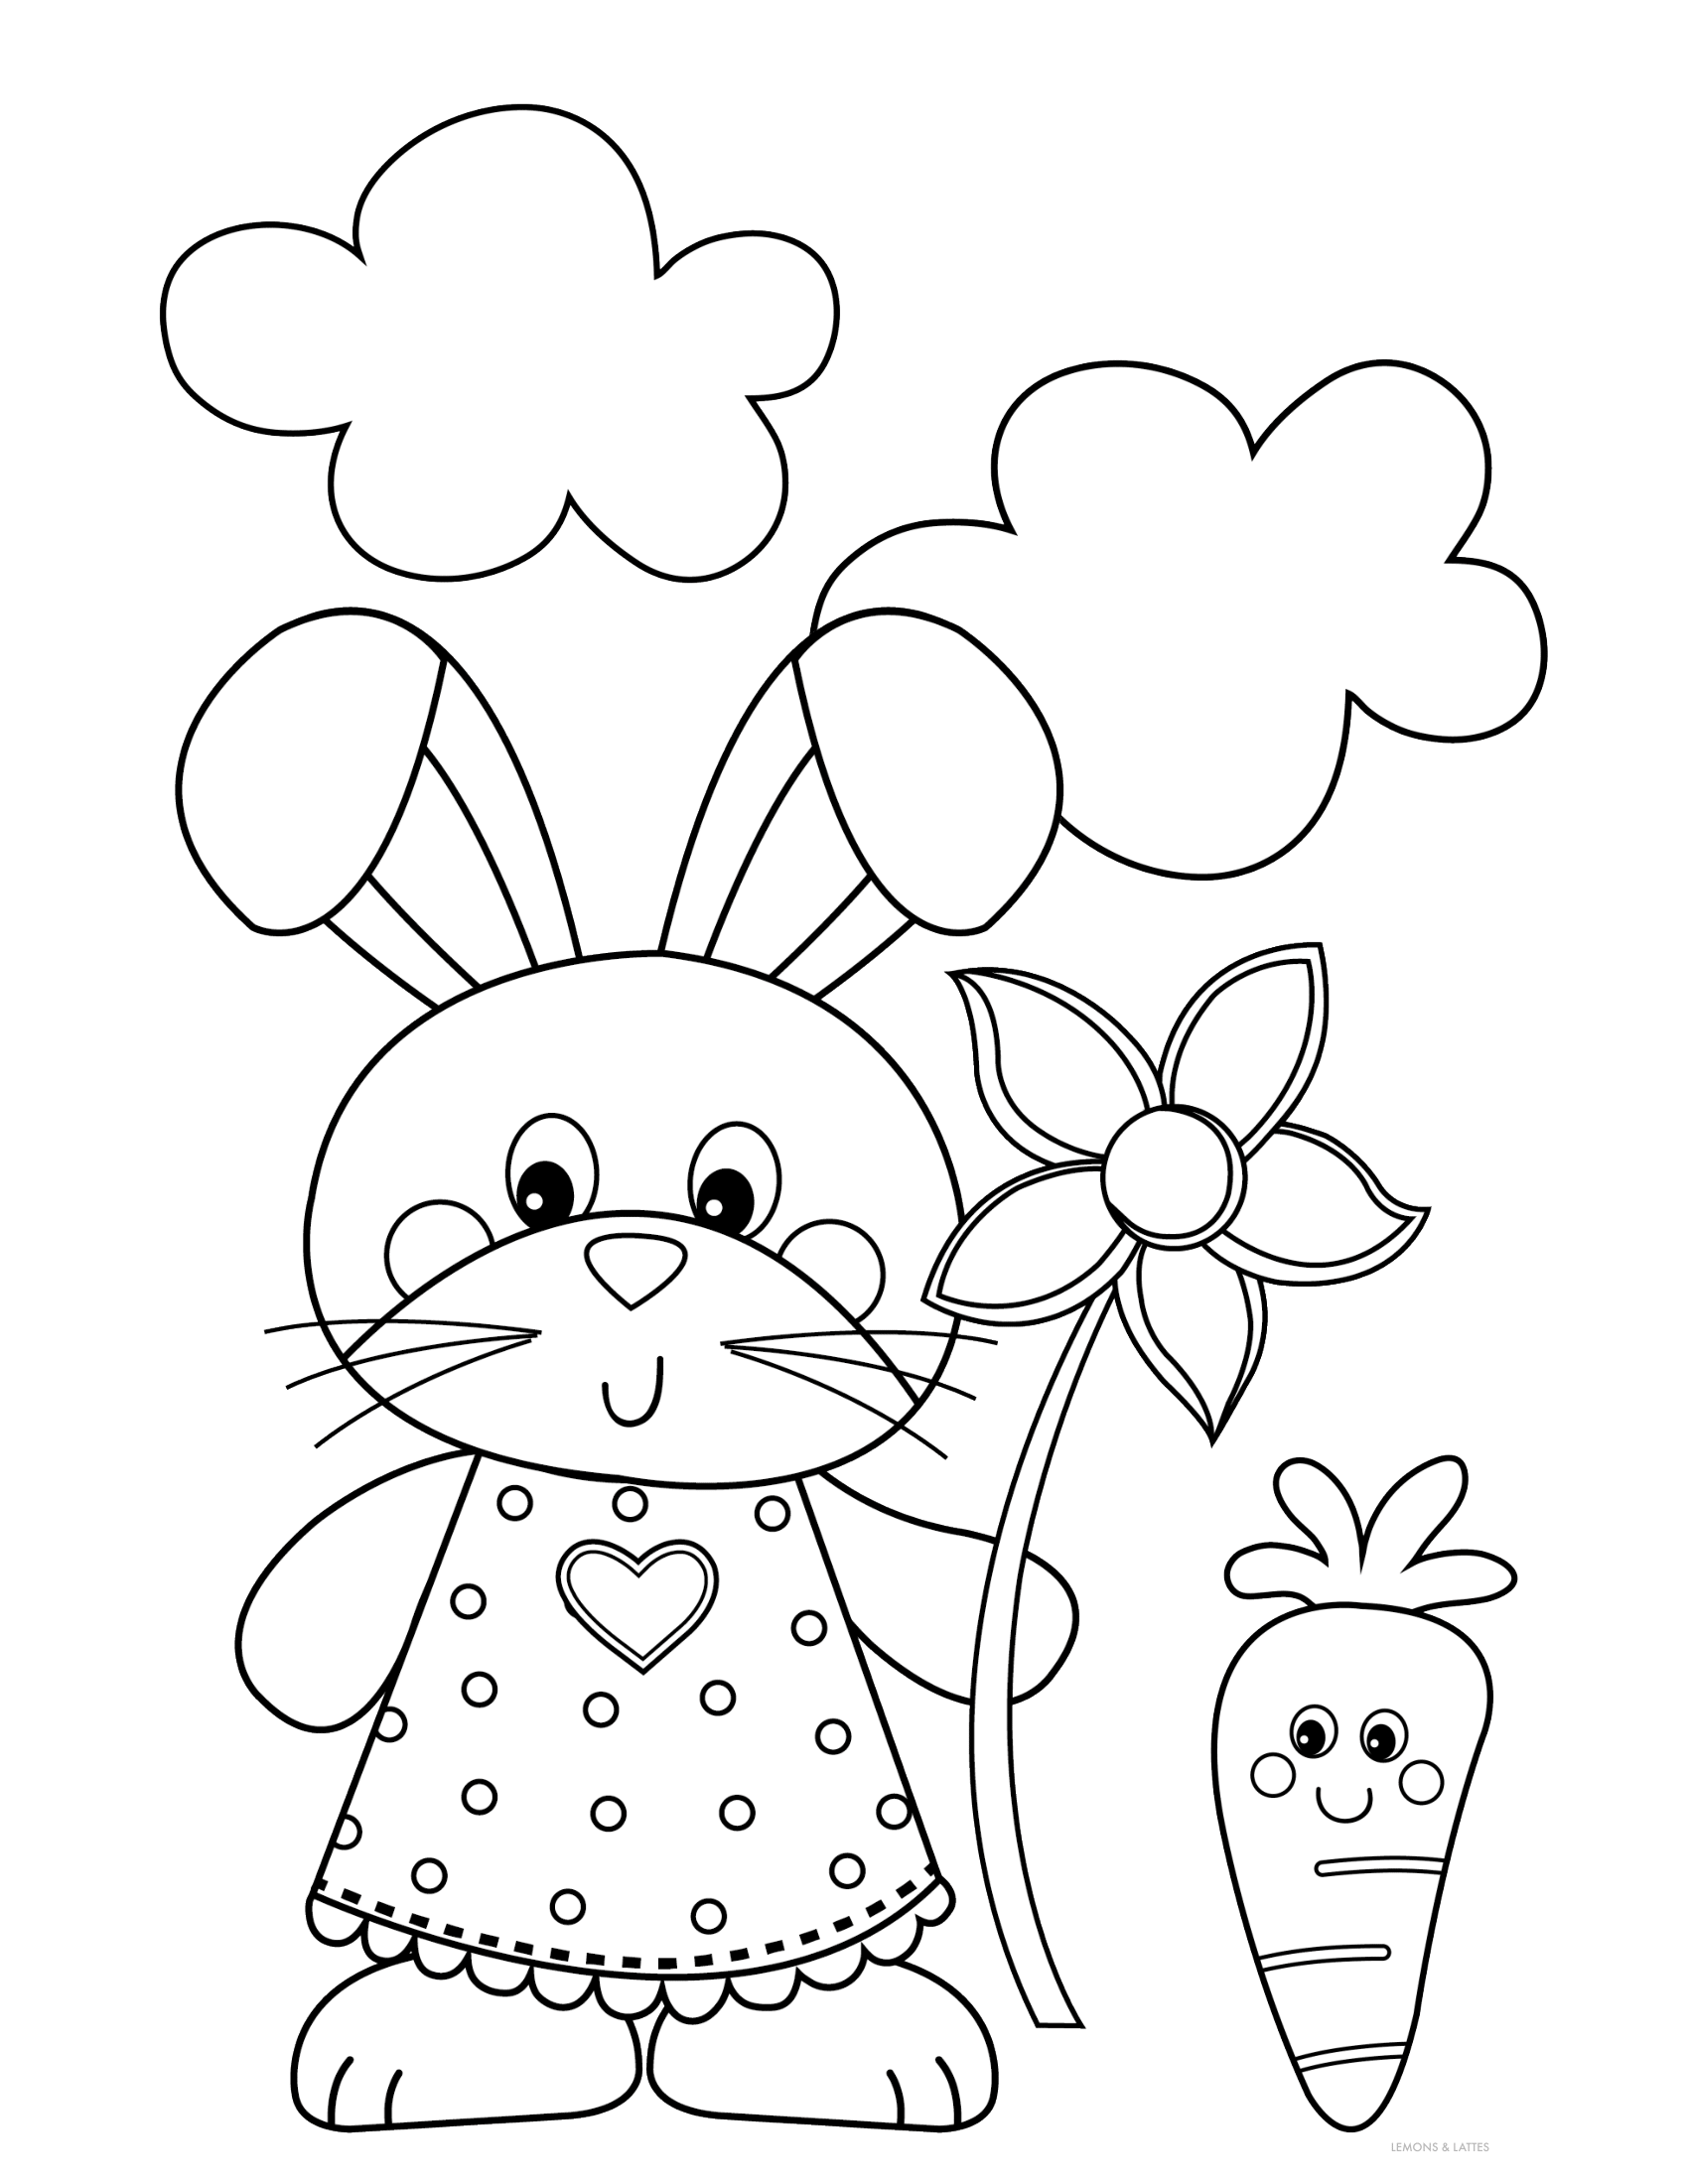 Free Printable Easter Coloring Pages Free Easter Coloring Pages Bunny Coloring Pages Easter Coloring Book